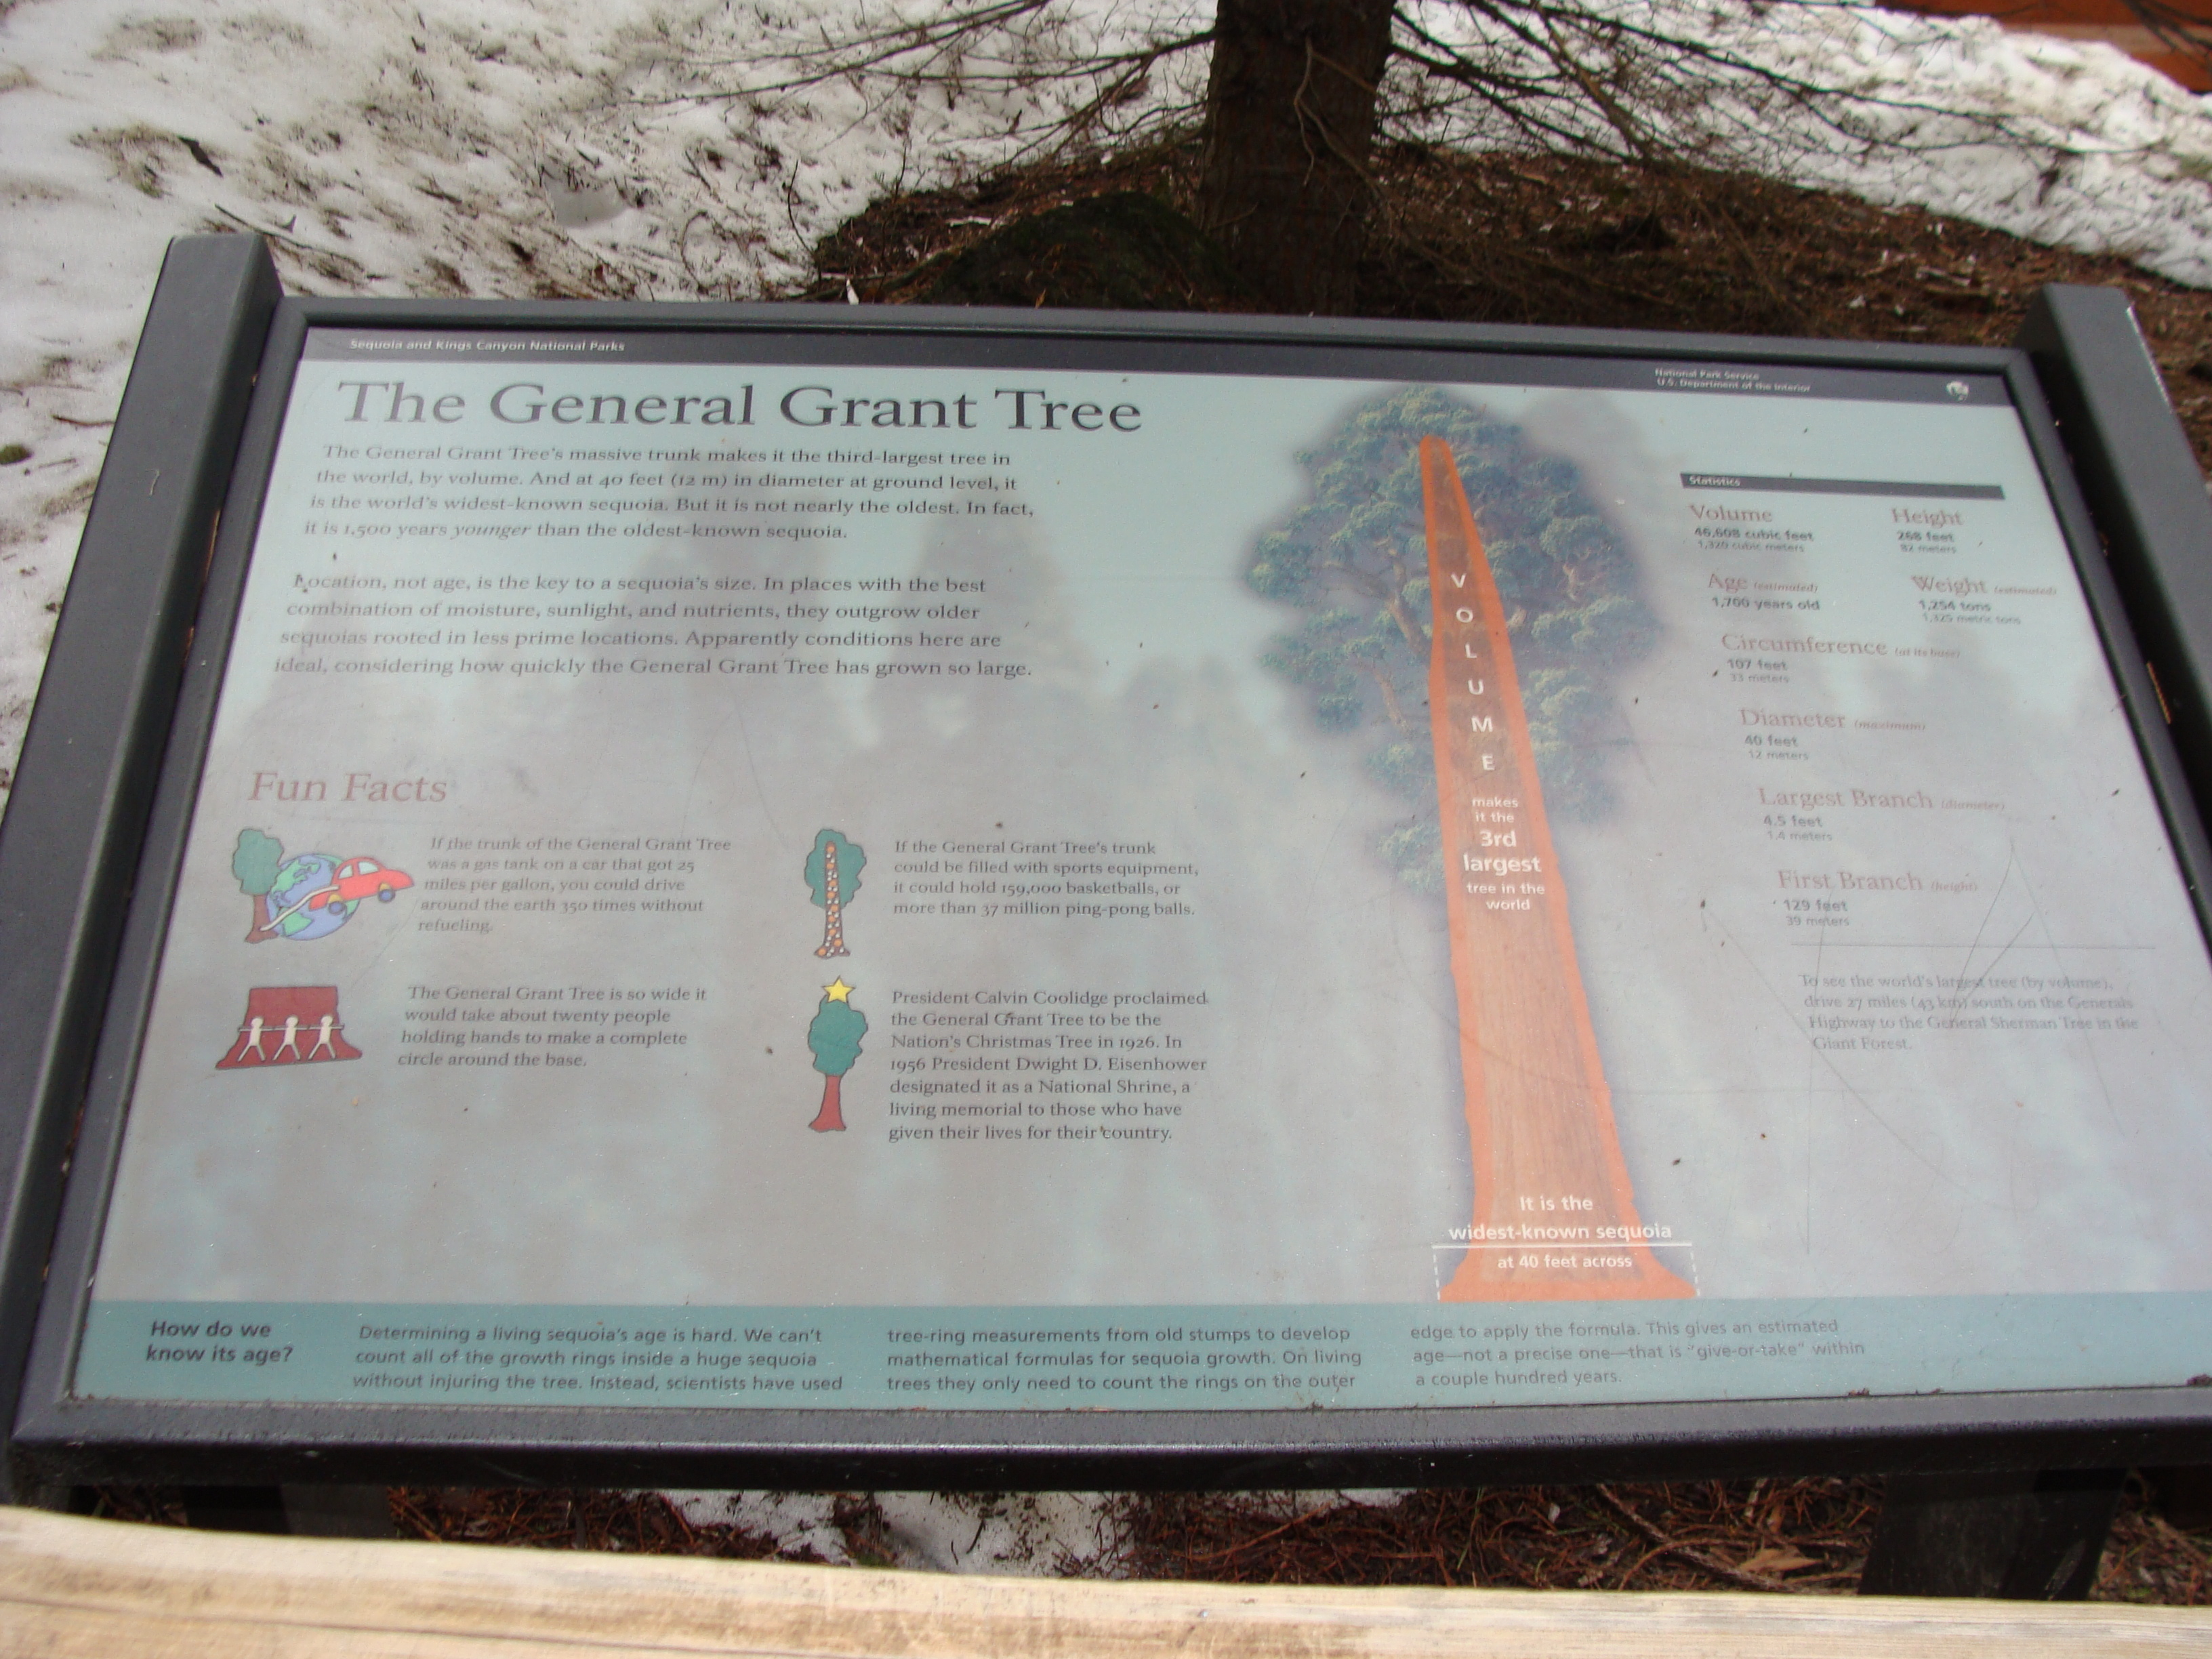 Cool info sign at the General Grant Tree